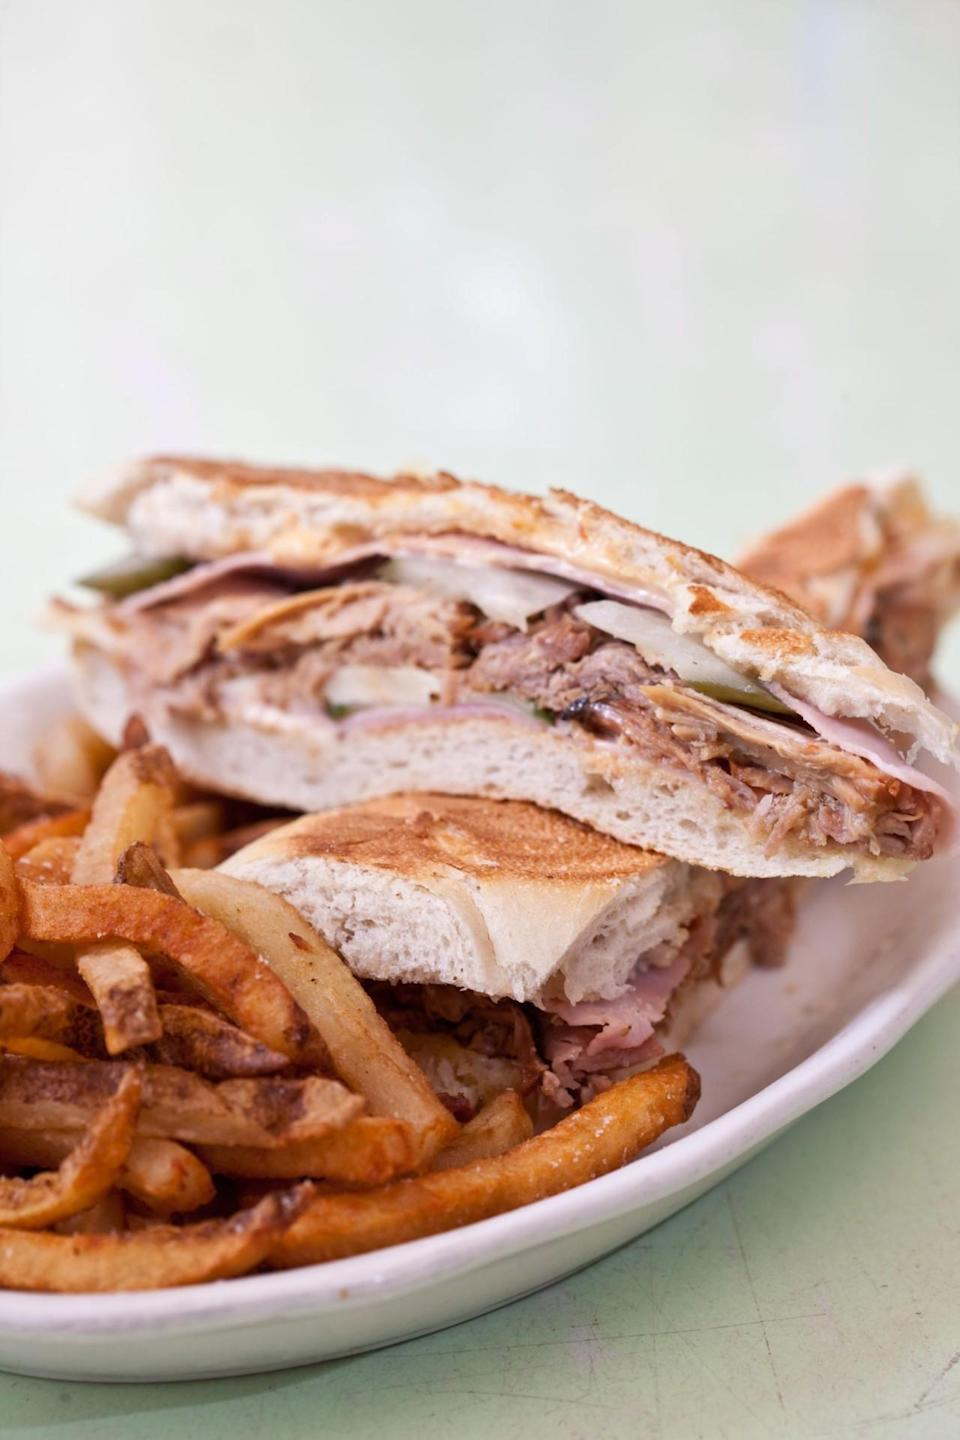 """<p>In Nolita, with 510 tips and reviews. Antonio Carusone writes, """"Great food and atmosphere. Try the Cuban sandwich and Mexican corn."""" <a href=""""http://cafehabana.com/"""" rel=""""nofollow noopener"""" target=""""_blank"""" data-ylk=""""slk:17 Prince St."""" class=""""link rapid-noclick-resp"""">17 Prince St.</a></p>"""